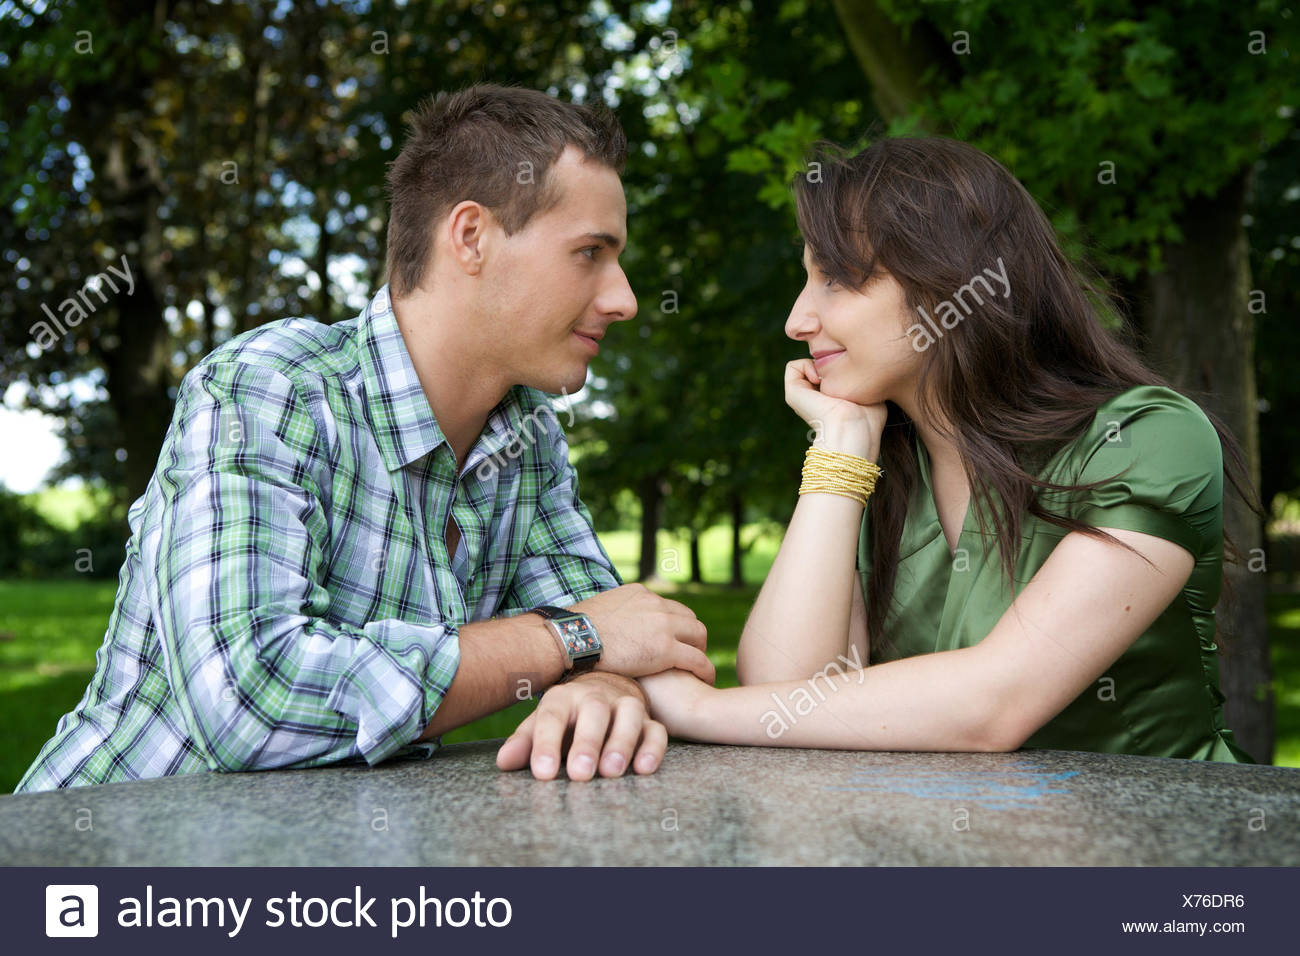 Young couple holding hands and looking at each other - Stock Image